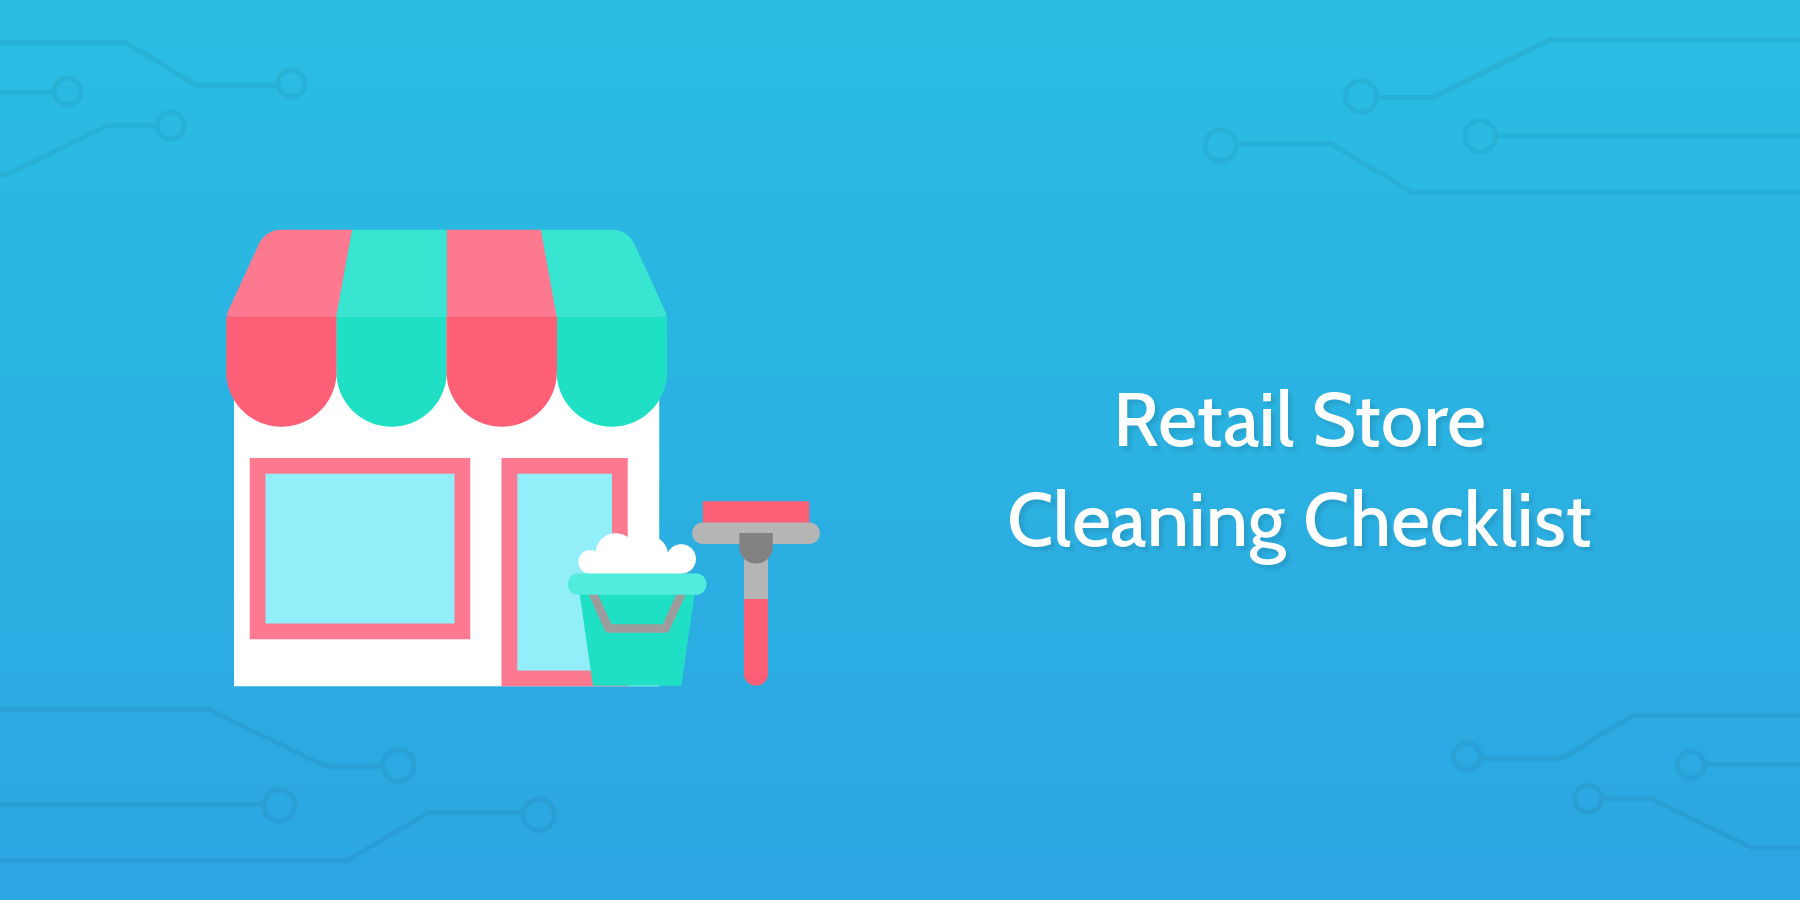 Retail Store Cleaning Checklist